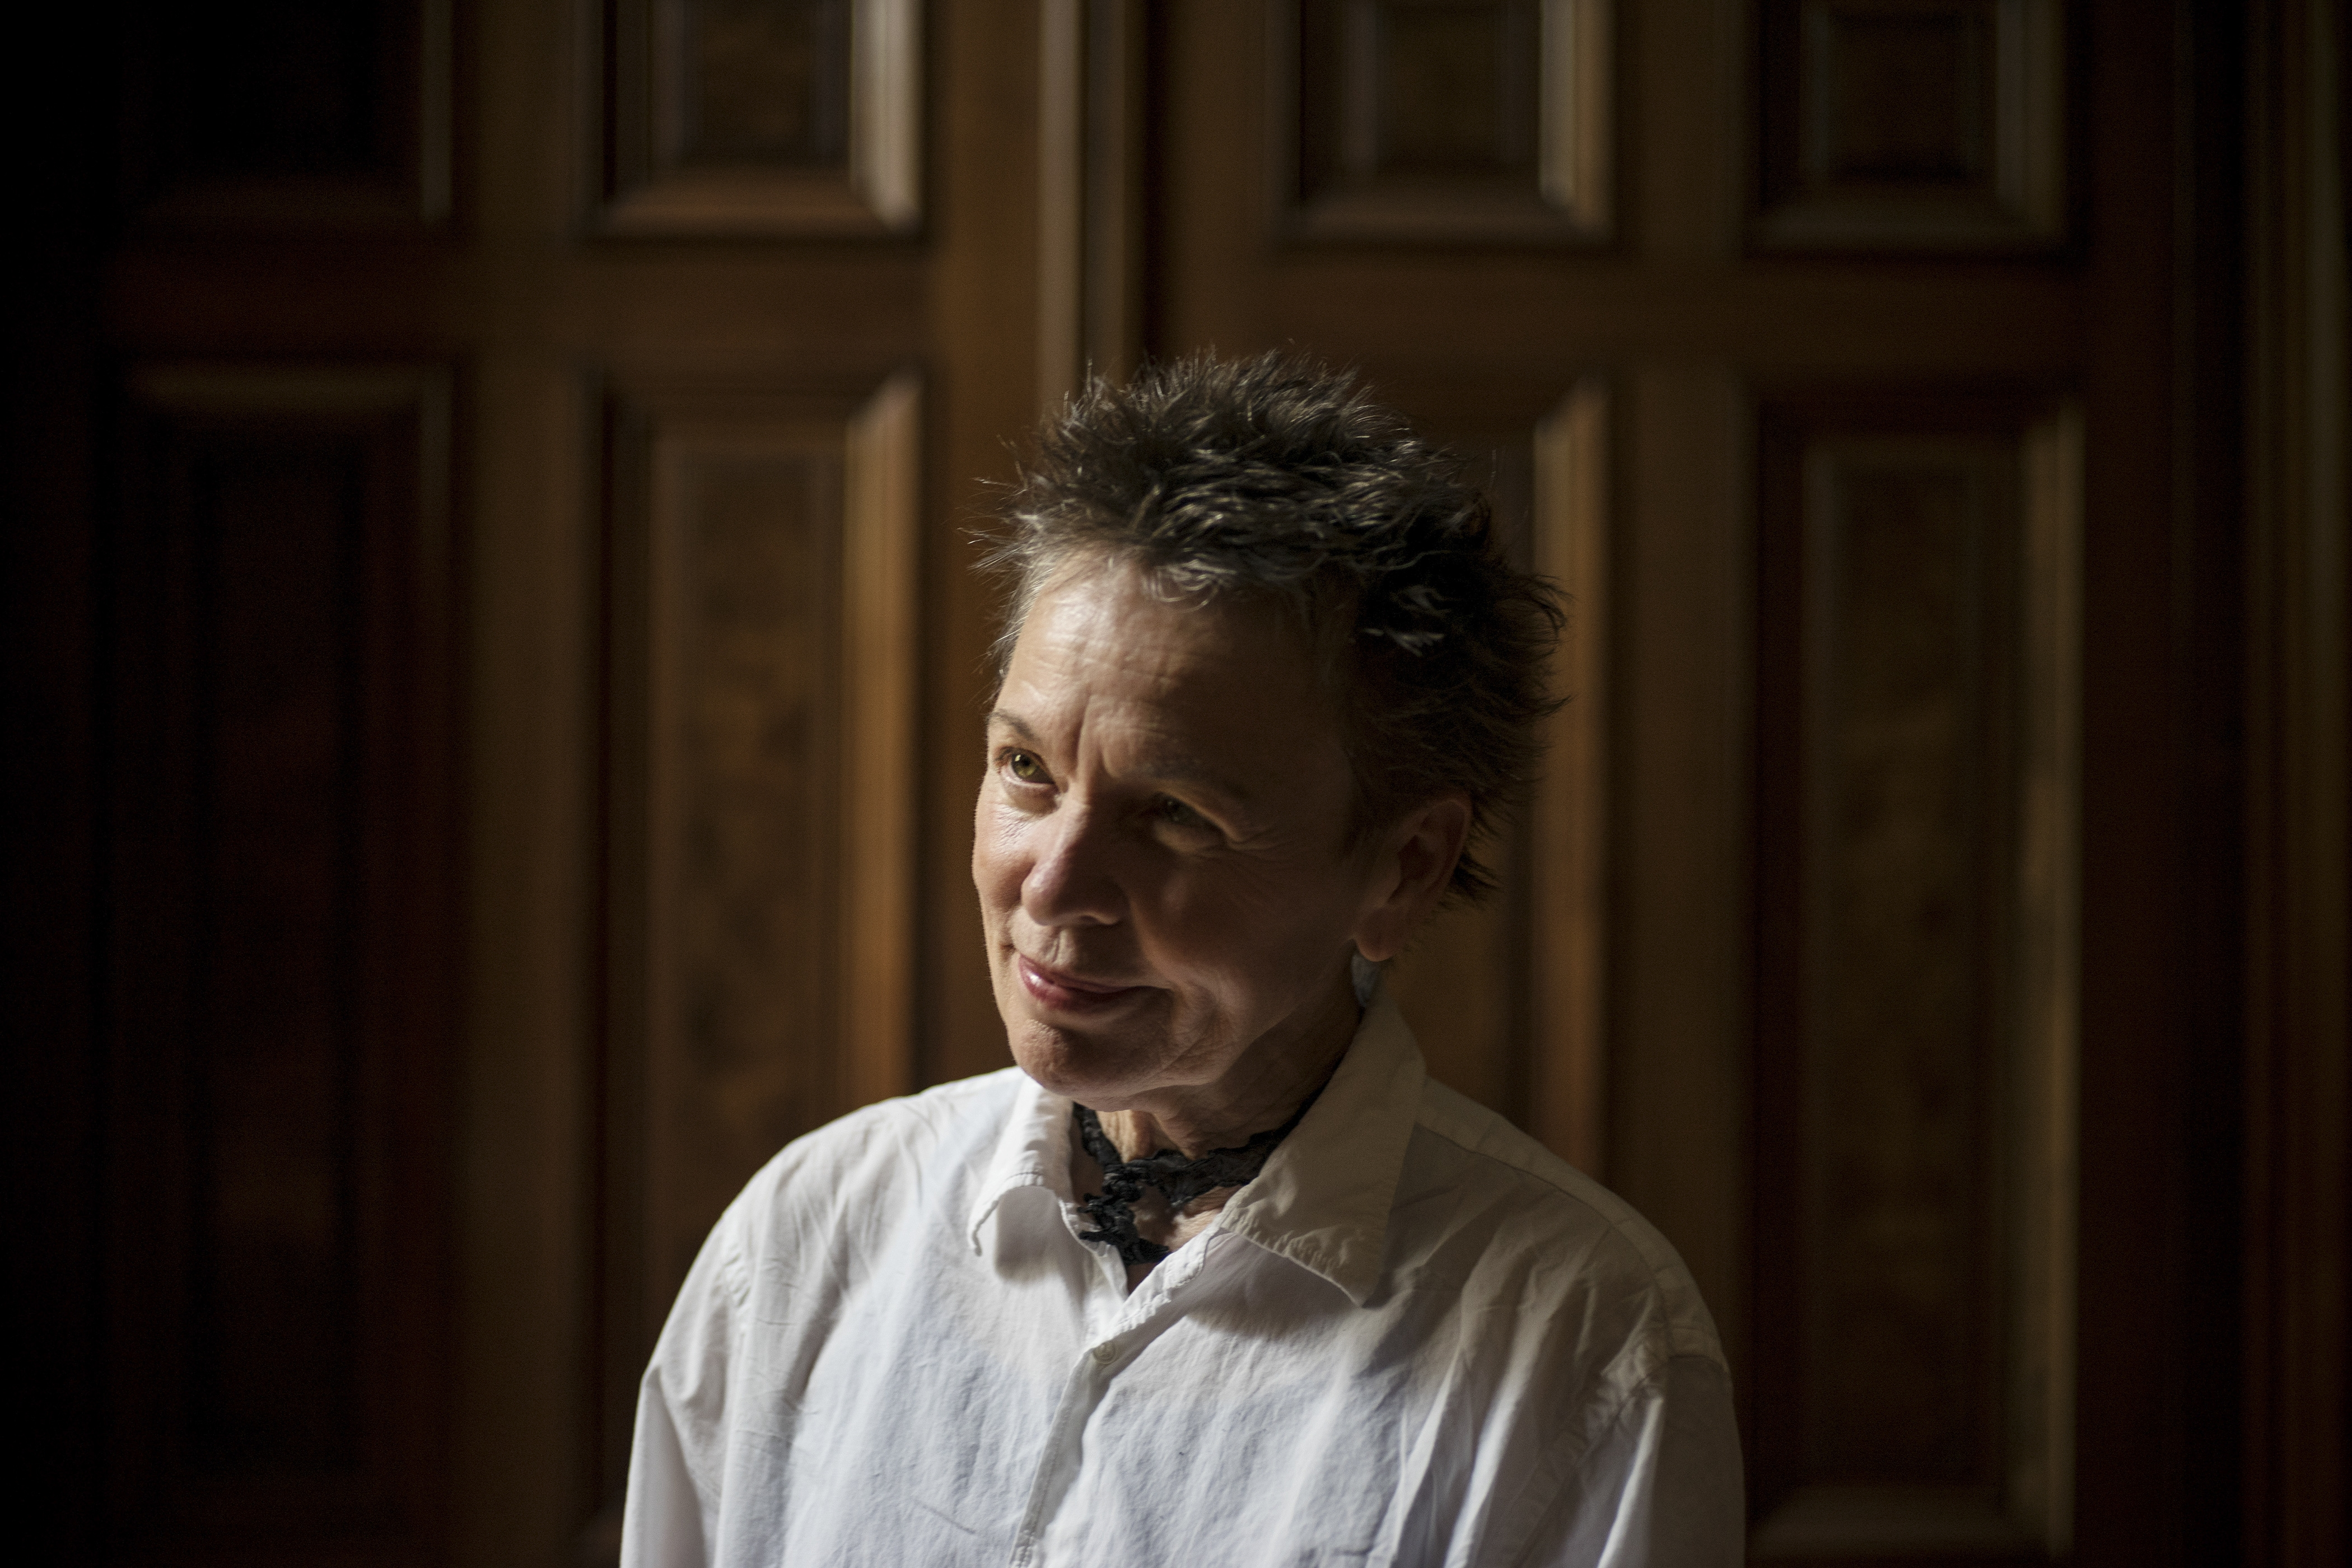 PHOTO MOVED IN ADVANCE AND NOT FOR USE - ONLINE OR IN PRINT - BEFORE OCT. 18, 2015. -- Laurie Anderson at the Park Avenue Armory in New York, Aug. 20, 2015. Anderson has a new film, 'Heart of a Dog,' that opens in New York on Oct. 21, 2015. (Todd Heisler/The New York Times)